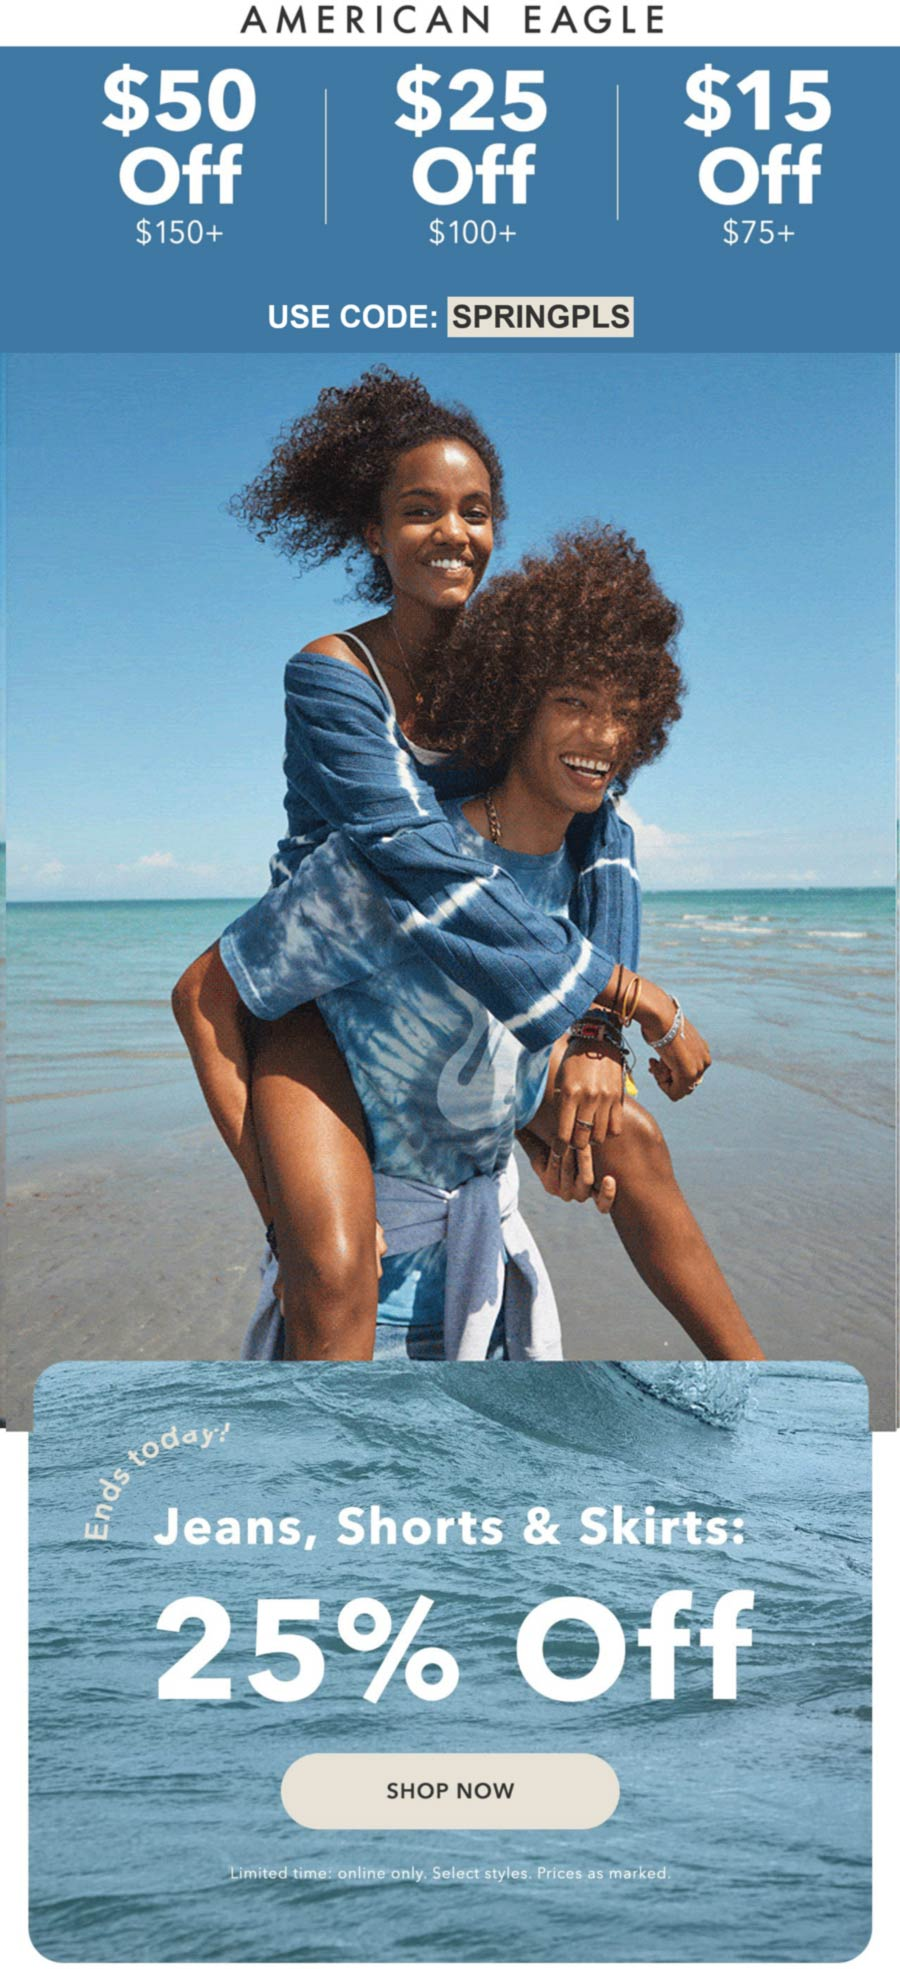 American Eagle stores Coupon  $50 off $150 & more today at American Eagle via promo code SPRINGPLS #americaneagle